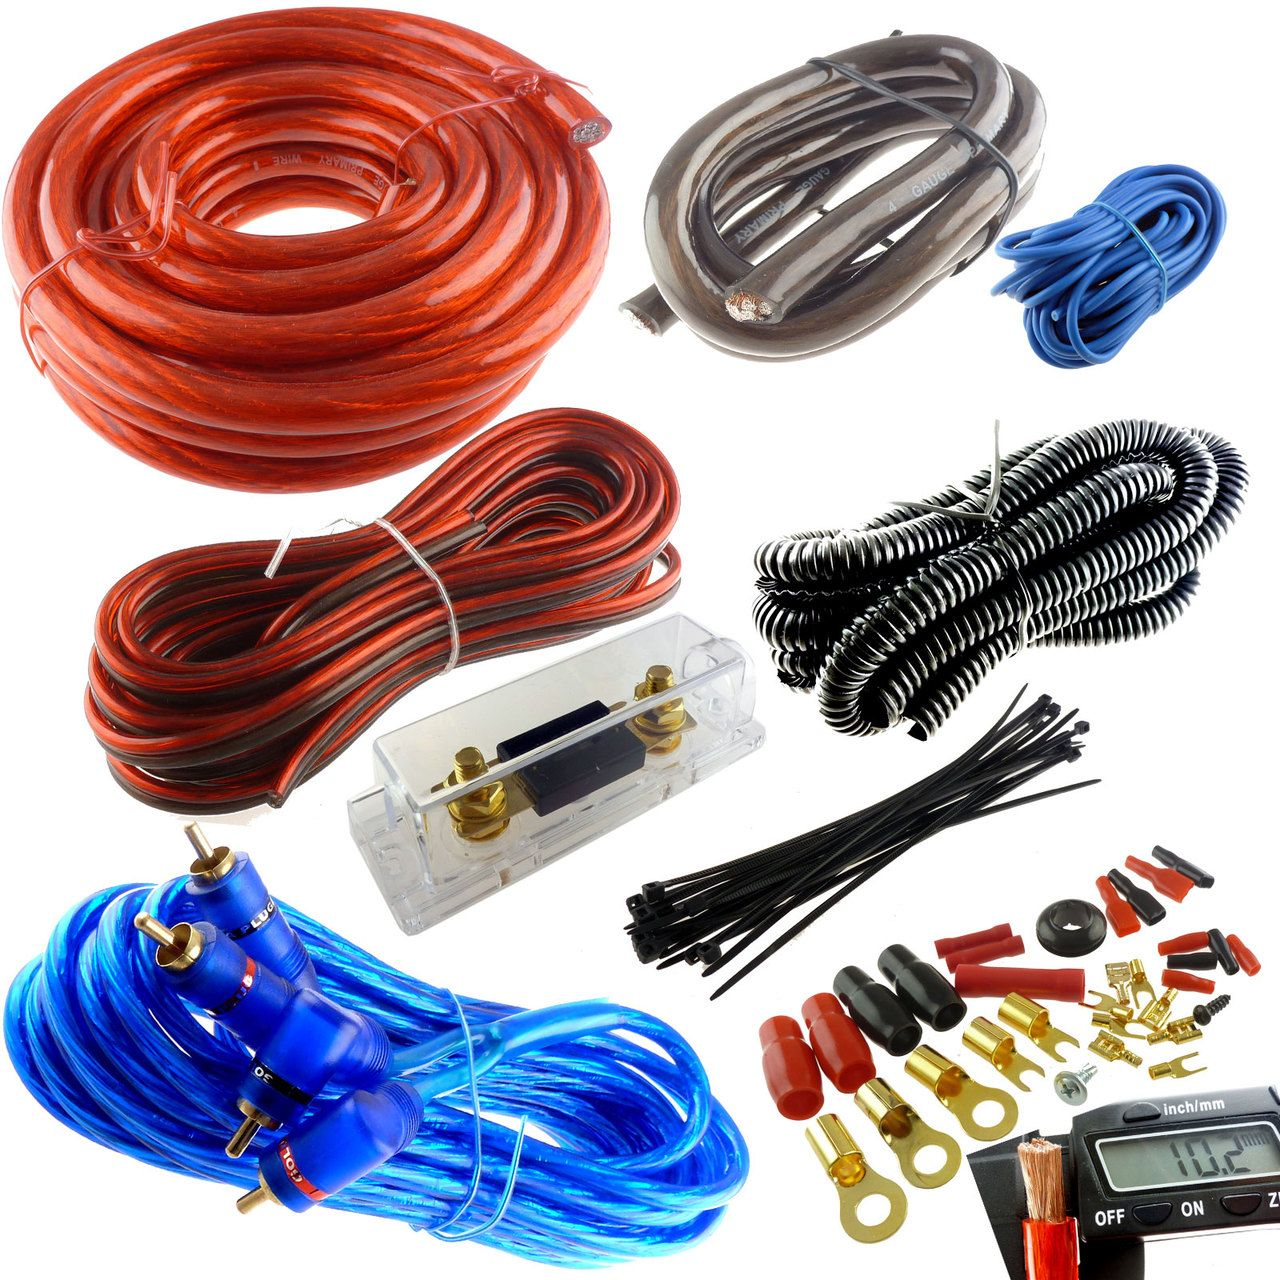 amp hookup kit Your electrical solutions products and 20 amp in metallic and engineered composite resin meter conversion kit.